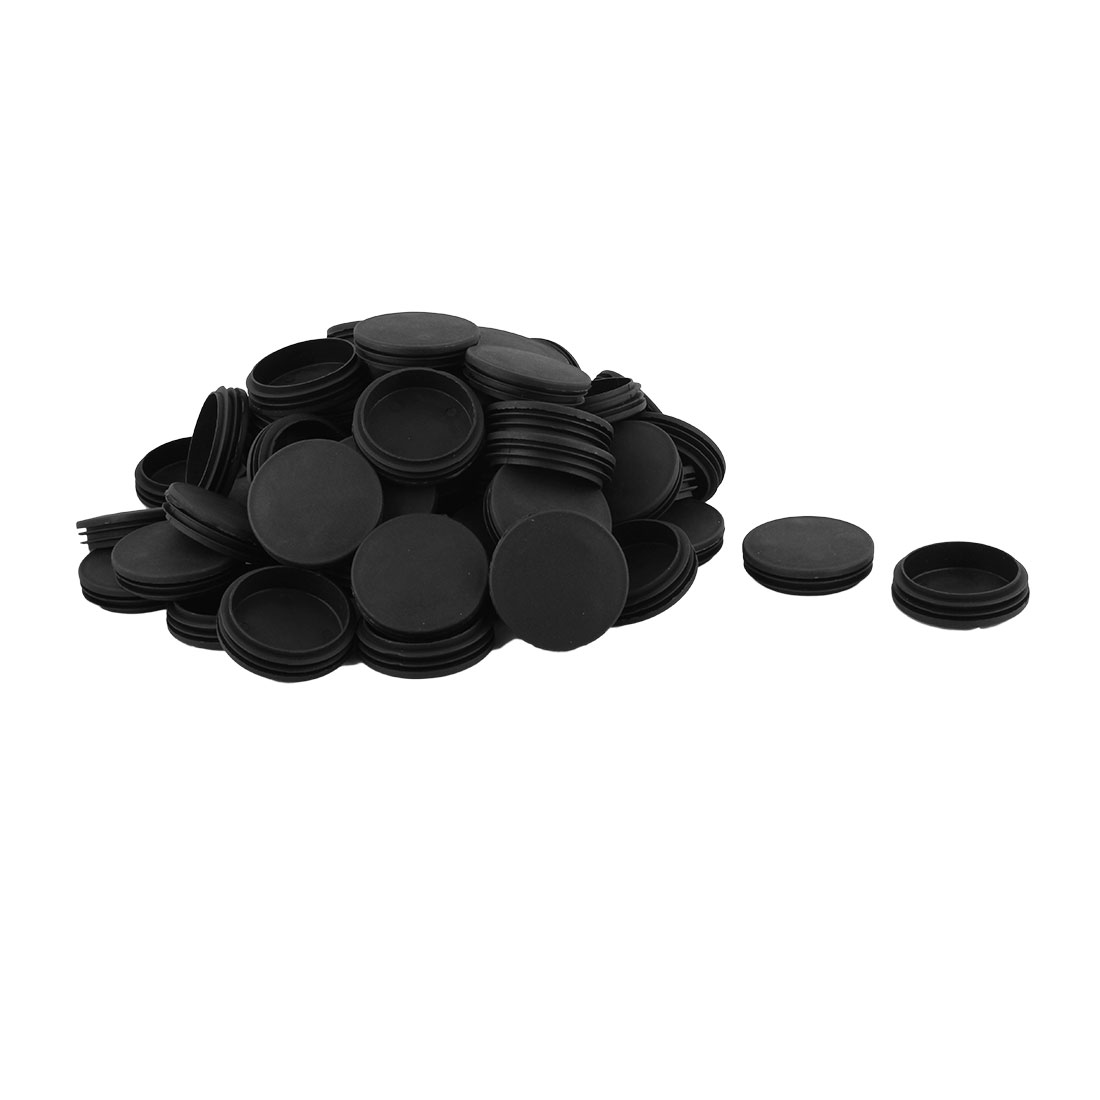 Home Office Plastic Round Shaped Table Chair Leg Tube Insert Black 74mm Dia 60pcs